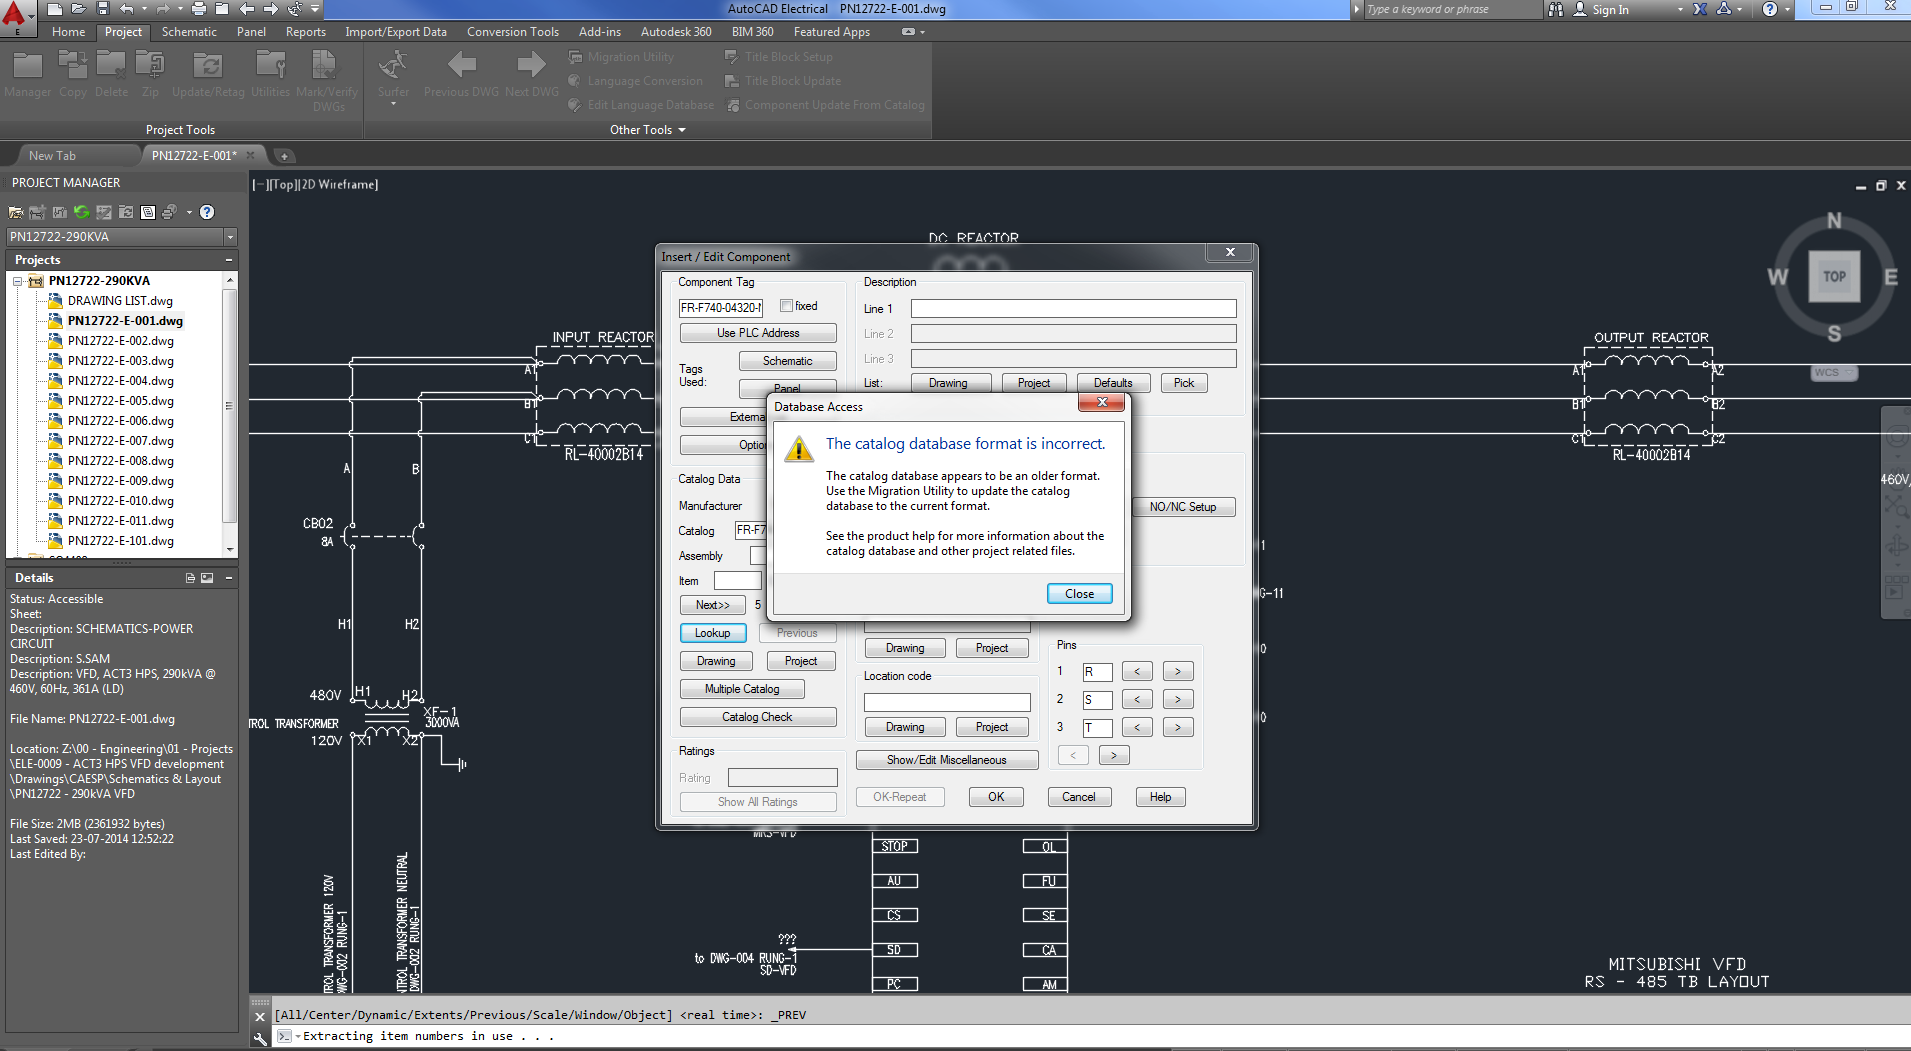 autocad electrical 2014 free download full version with crack 64 bit